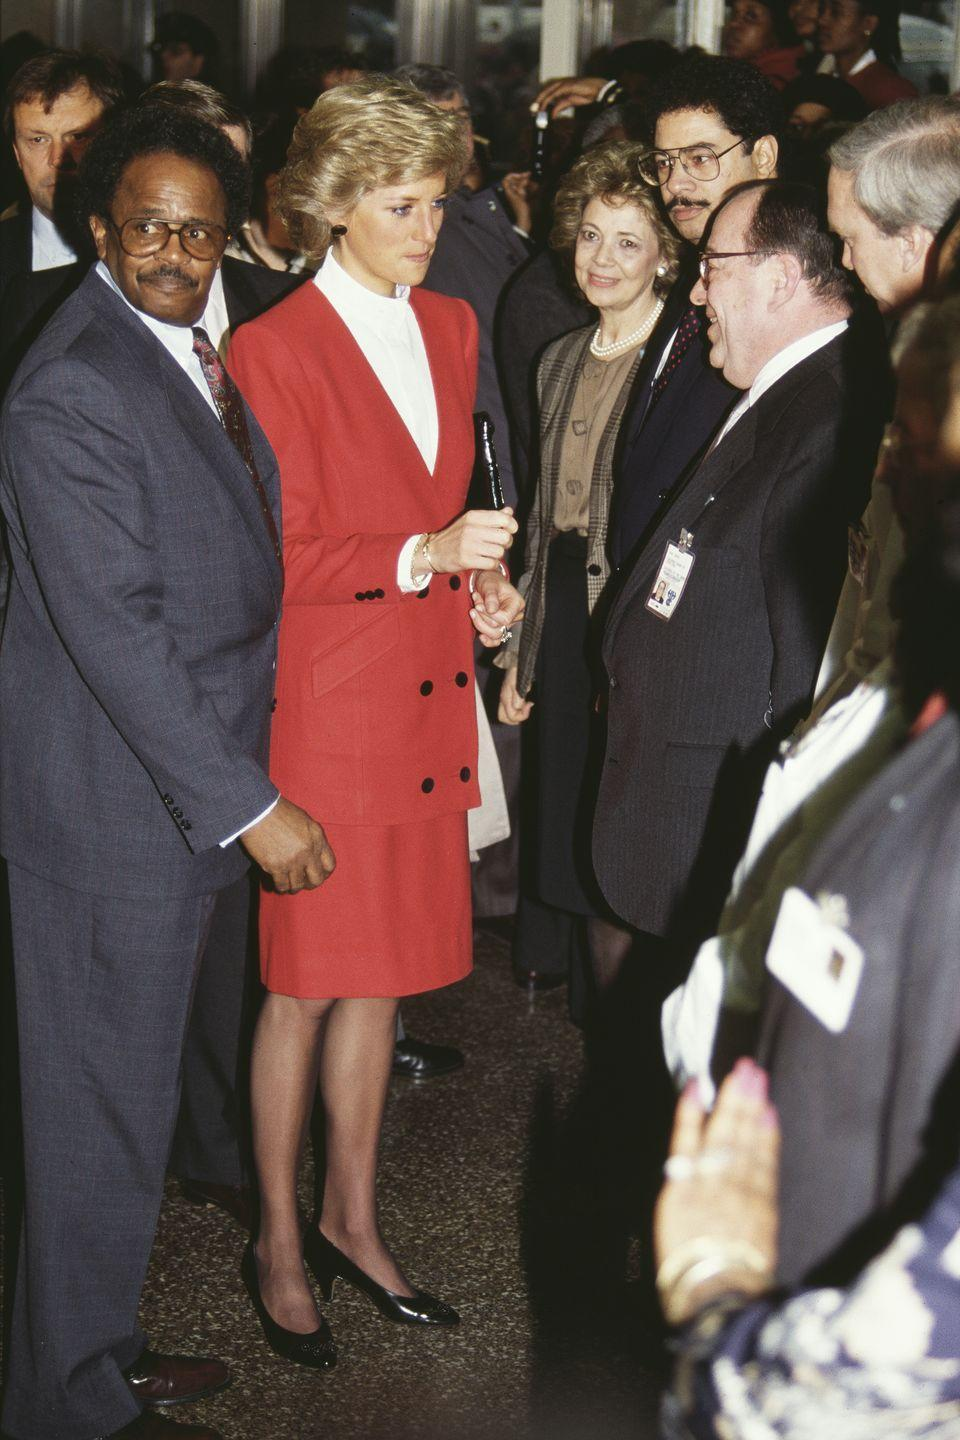 "<p>The princess wears a red Catherine Walker skirt suit while visiting the AIDS unit at Harlem Hospital. She <a href=""https://apnews.com/article/86aba3240f517c4c63b49674c0555f7c"" rel=""nofollow noopener"" target=""_blank"" data-ylk=""slk:met several children"" class=""link rapid-noclick-resp"">met several children</a> suffering from the illness before ending her trip to New York. </p>"